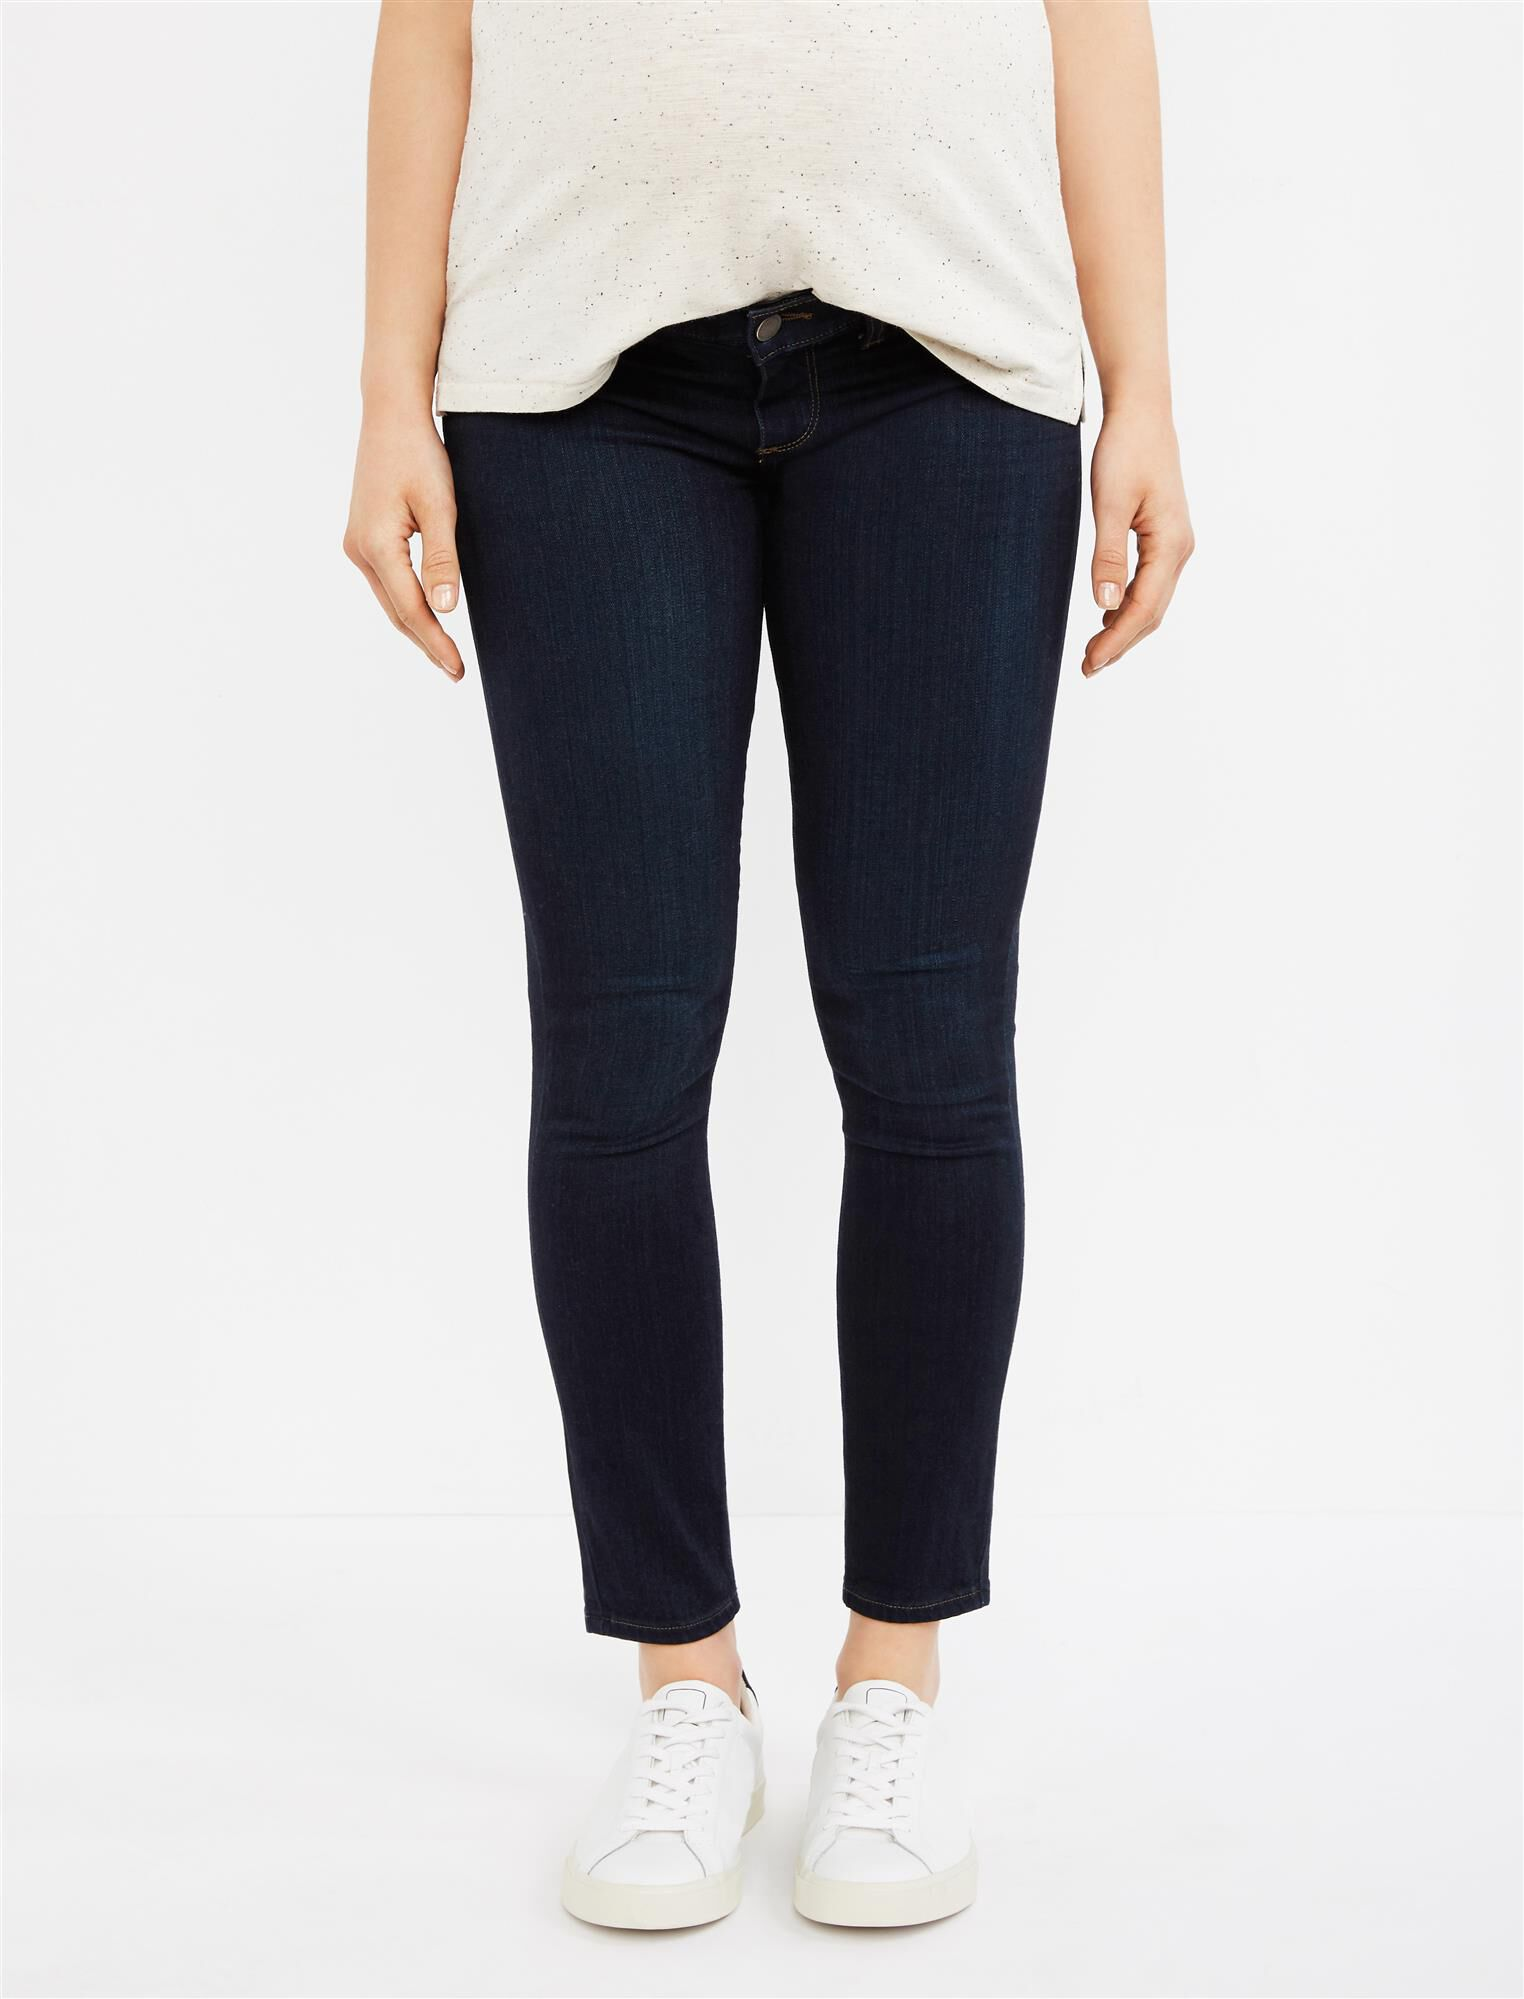 Paige Denim Under Belly Skinny Ankle Maternity Jeans